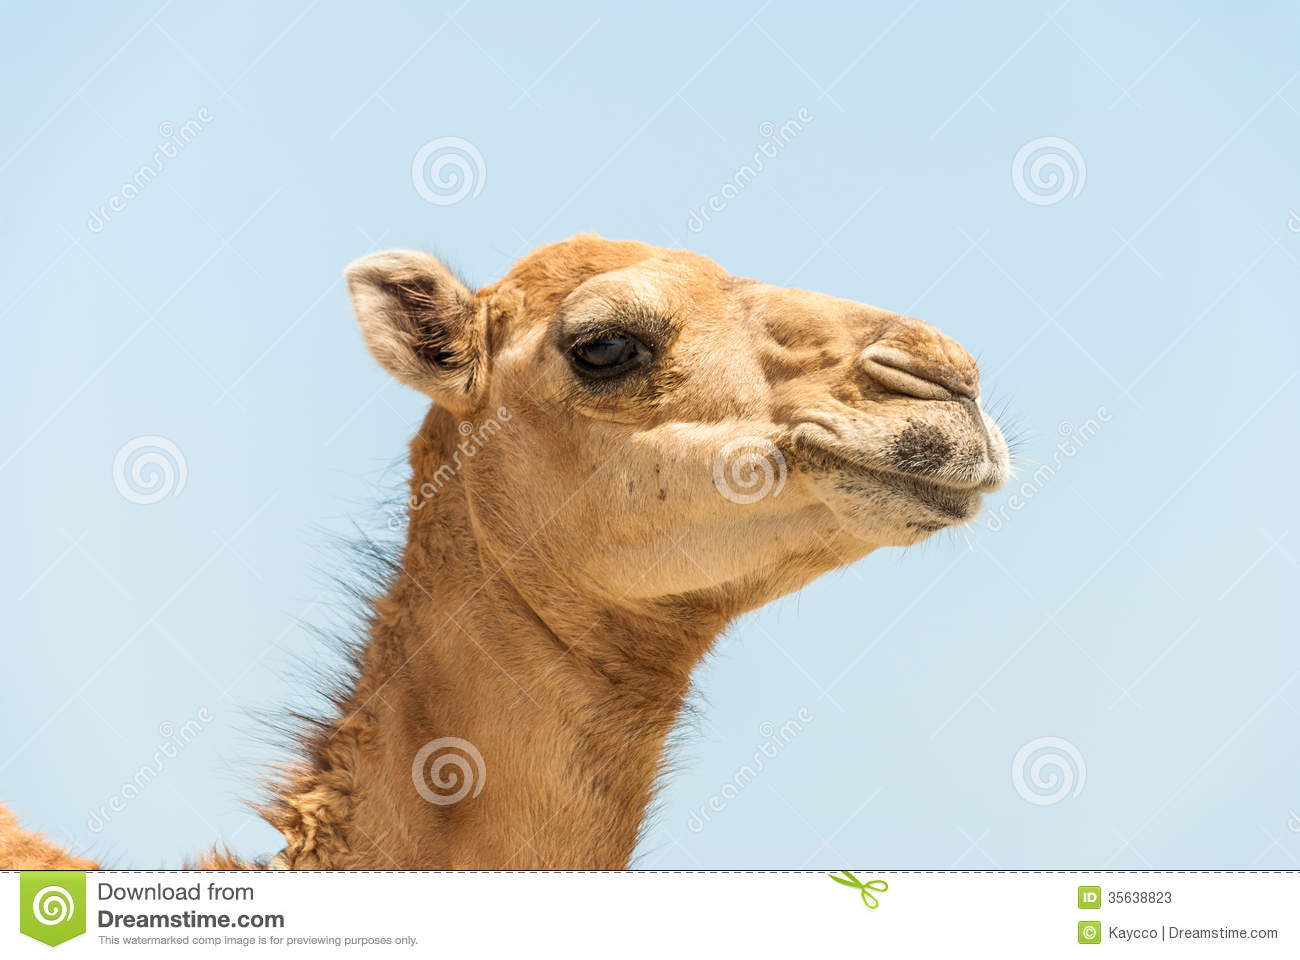 how to make a camel head